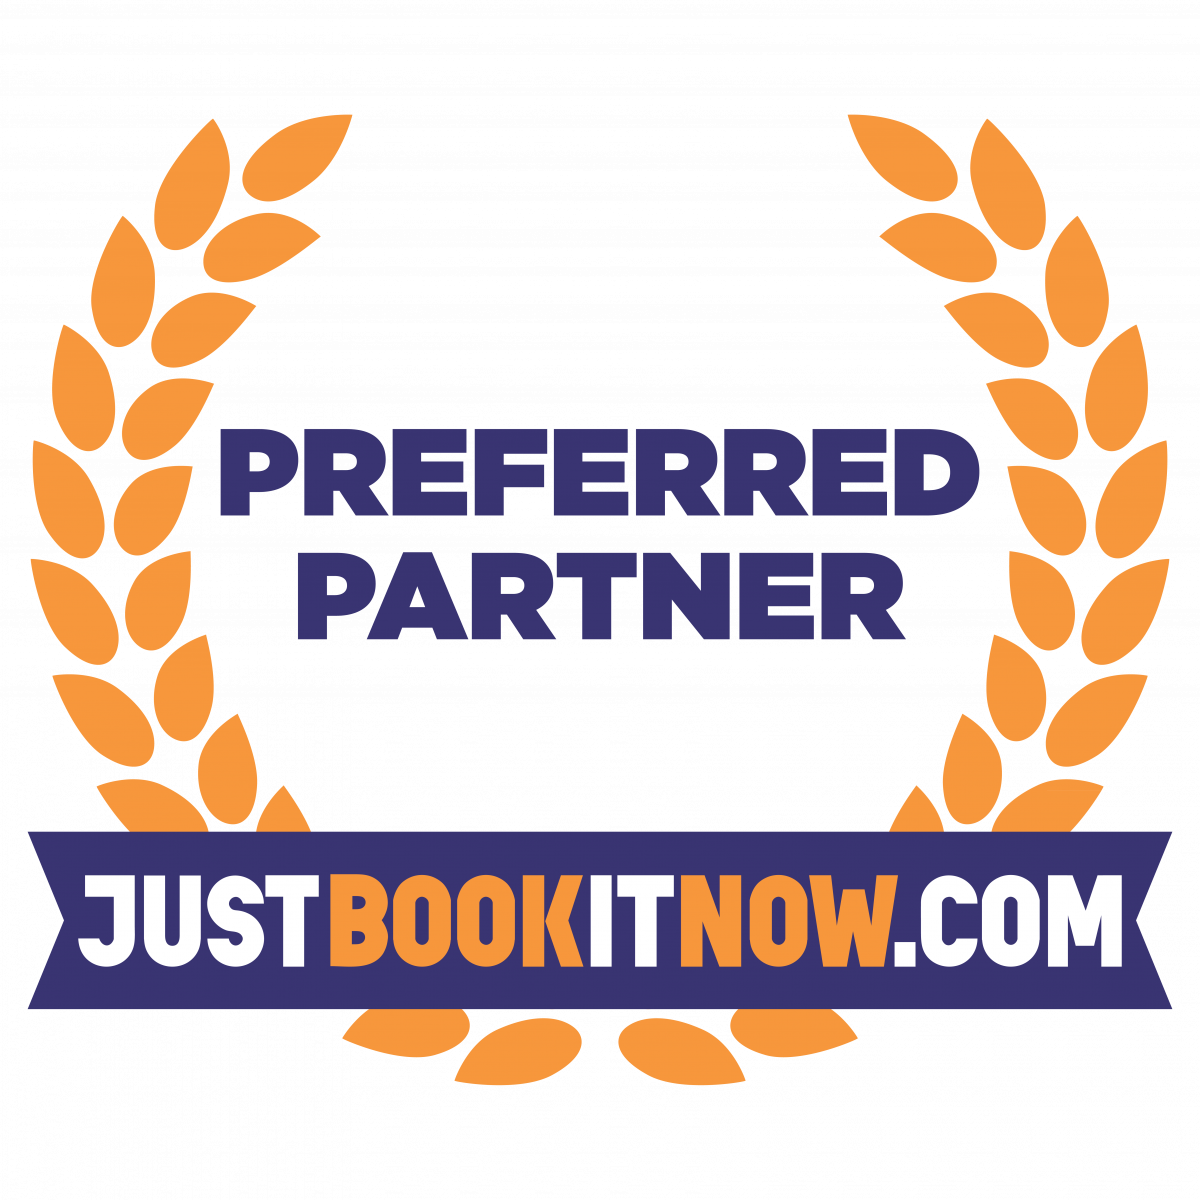 Partner with Flame and Justbookitnow.com